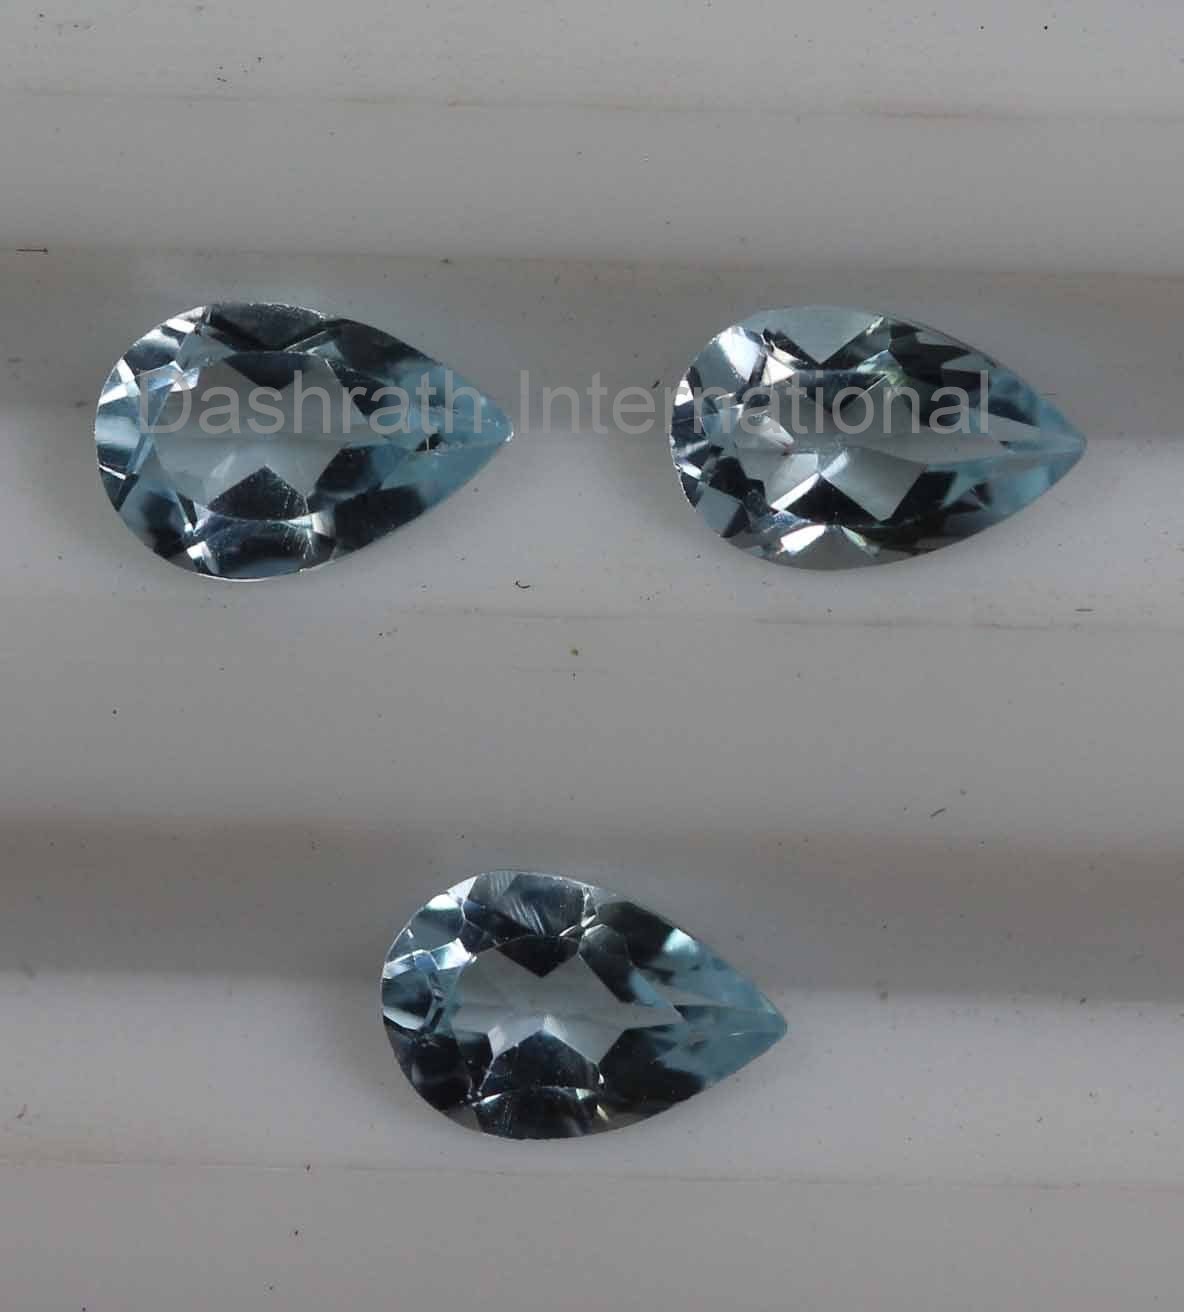 7x10mm Natural Sky Blue Topaz Faceted Cut Pear 10 Pieces Lot  Top Quality Loose Gemstone